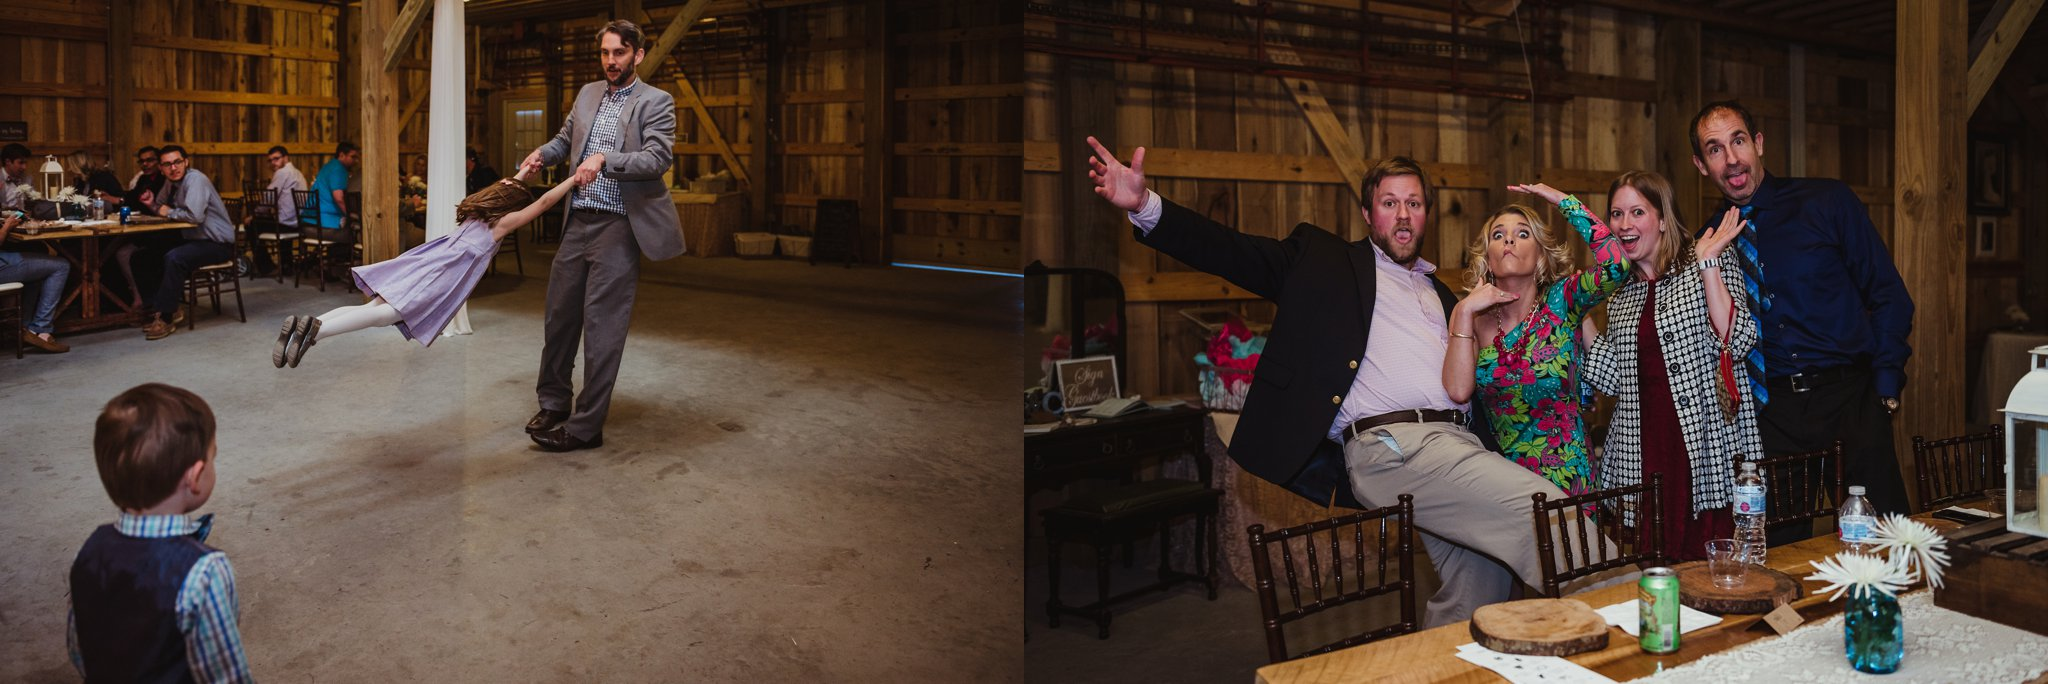 Guests are being silly at the wedding reception at Carlee Farm in Oxford, NC, taken by Rose Trail Images.